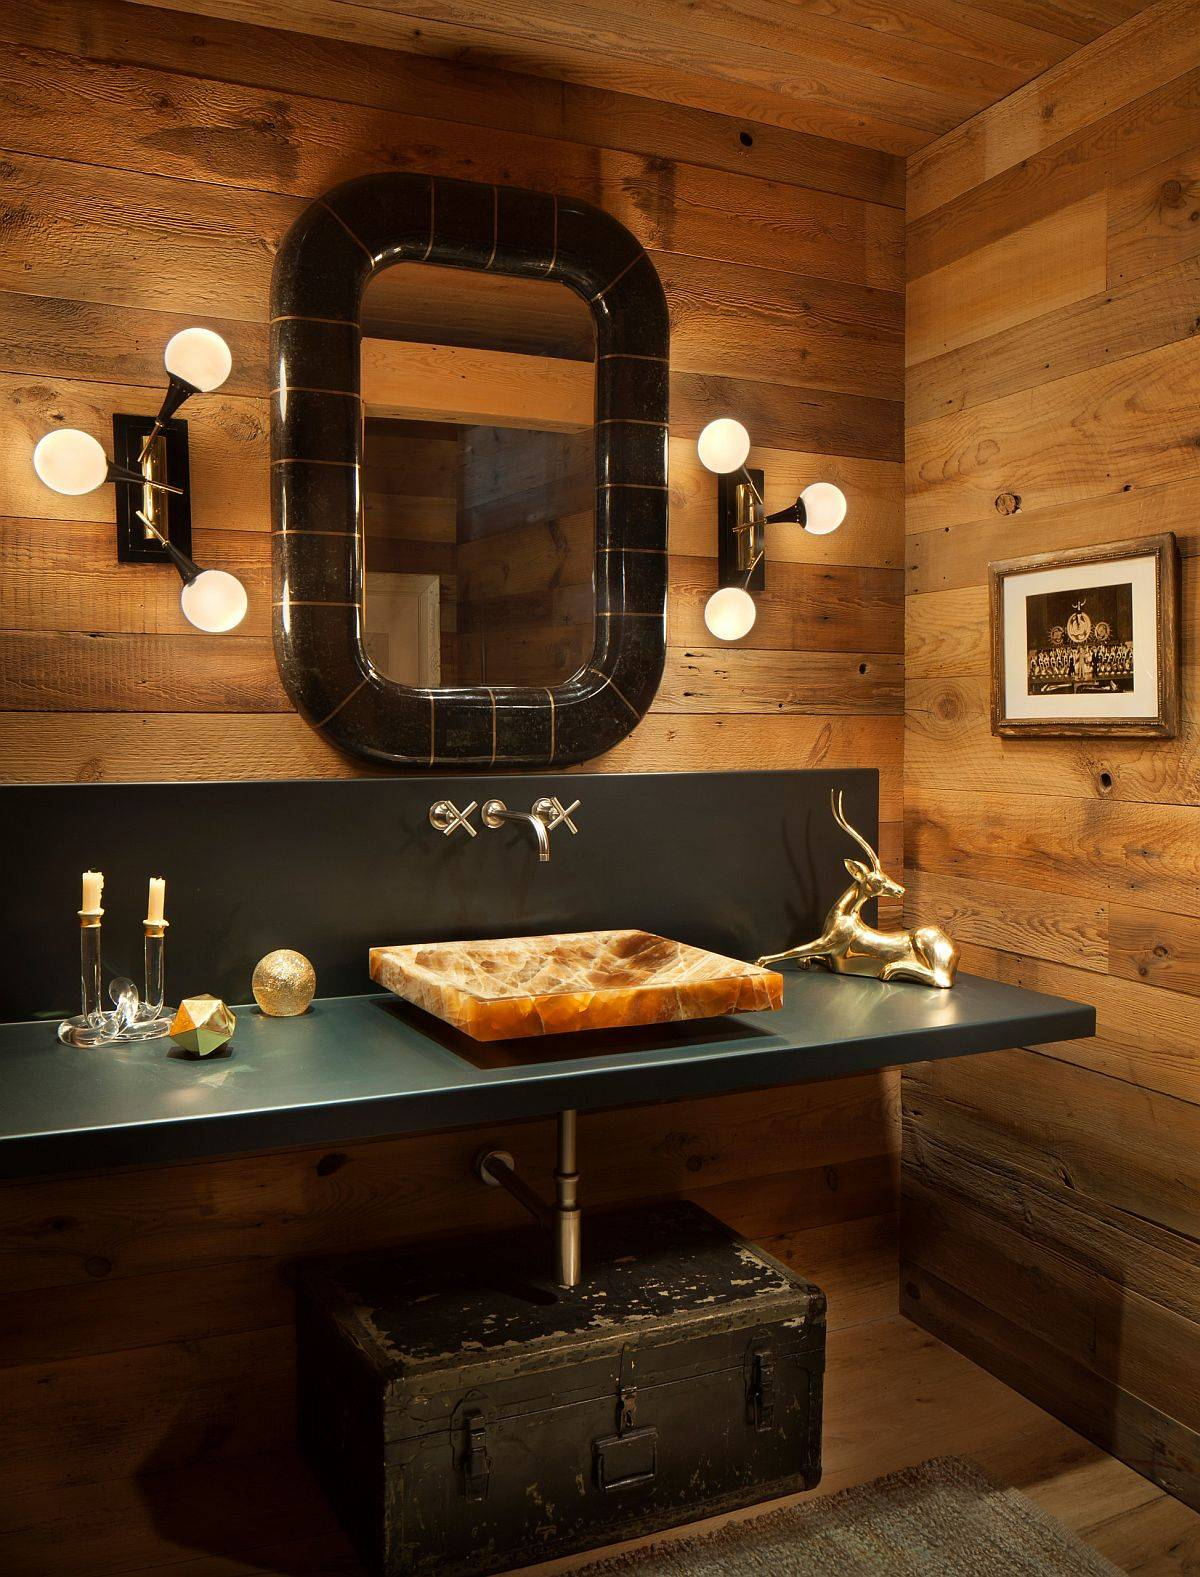 Finding-a-balance-between-modern-ergonomics-and-classic-rustic-aesthetics-in-the-wood-clad-powder-room-82842